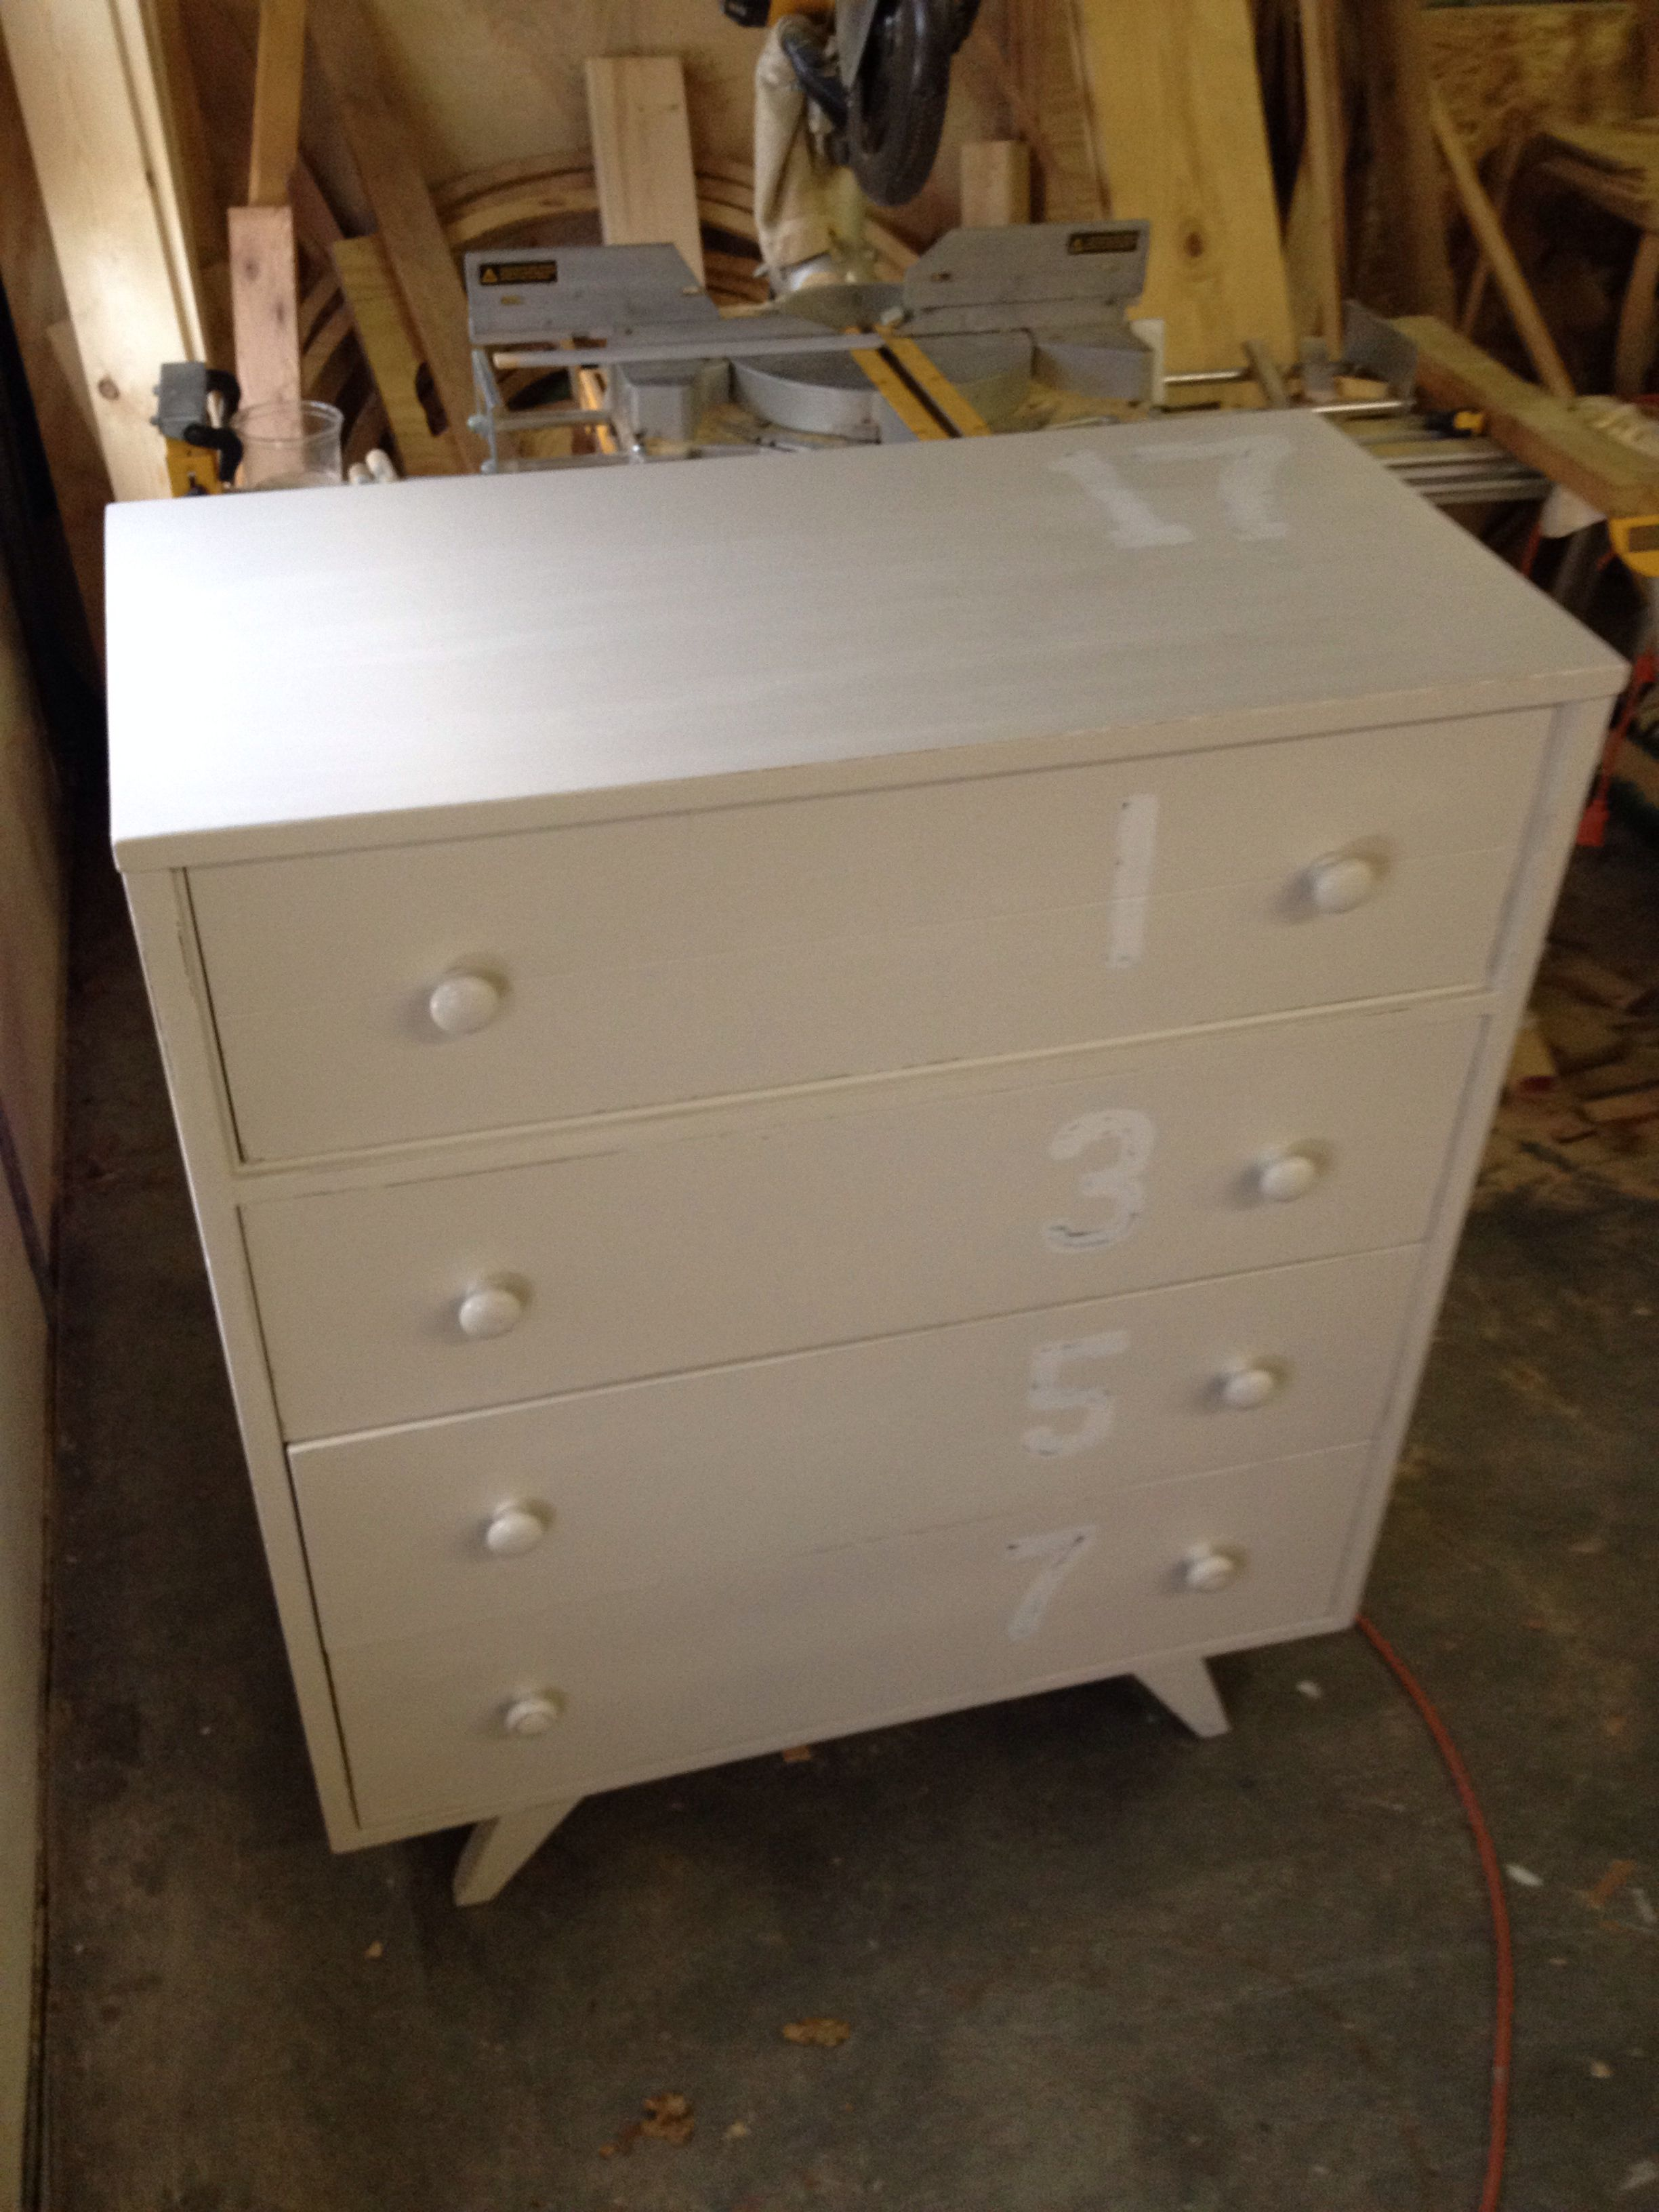 I like putting #s on dressers they have no significance